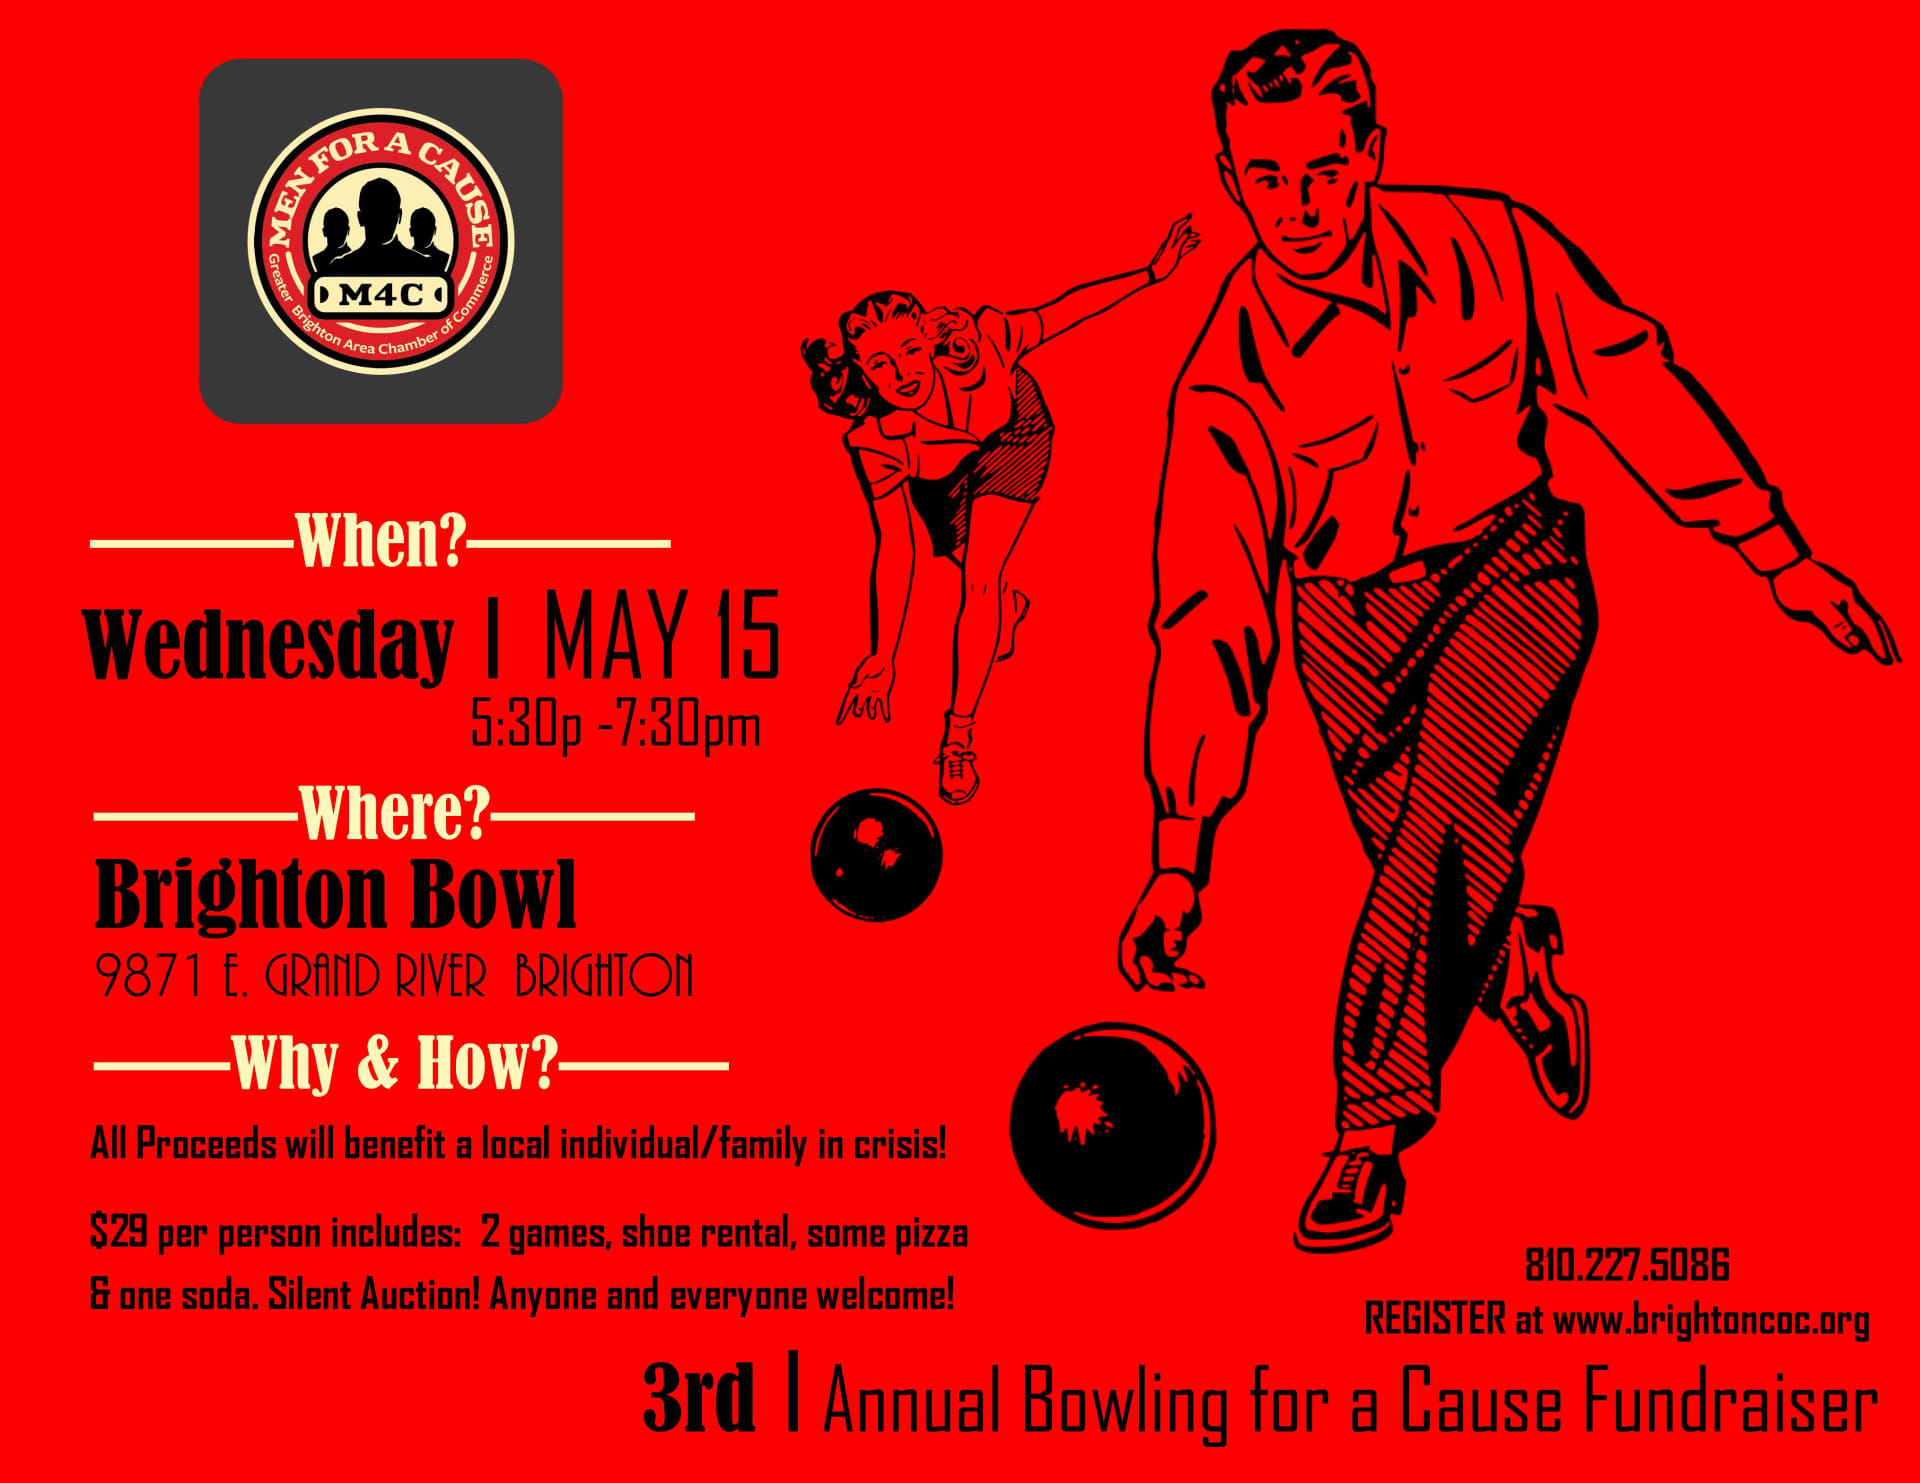 2019-M4C-May-15_Bowling-Event_3RD-ANNUAL-w1920.jpg